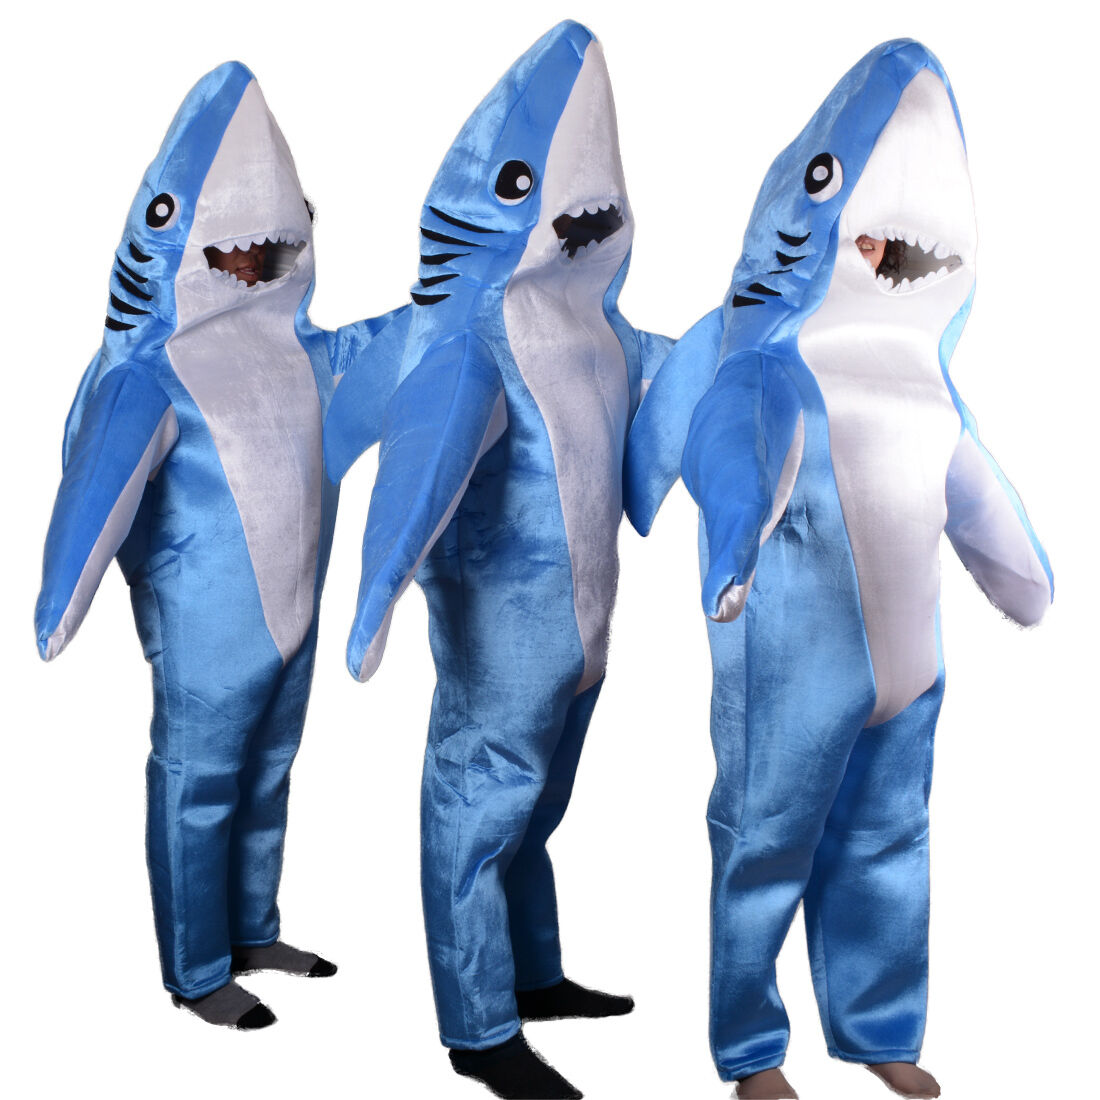 Halloween Whale Shark Mascot Costume Cosplay Animal Party Game Fancy Dress Parade Jumpsuit Outfit Adult Hot Sale Advertising New